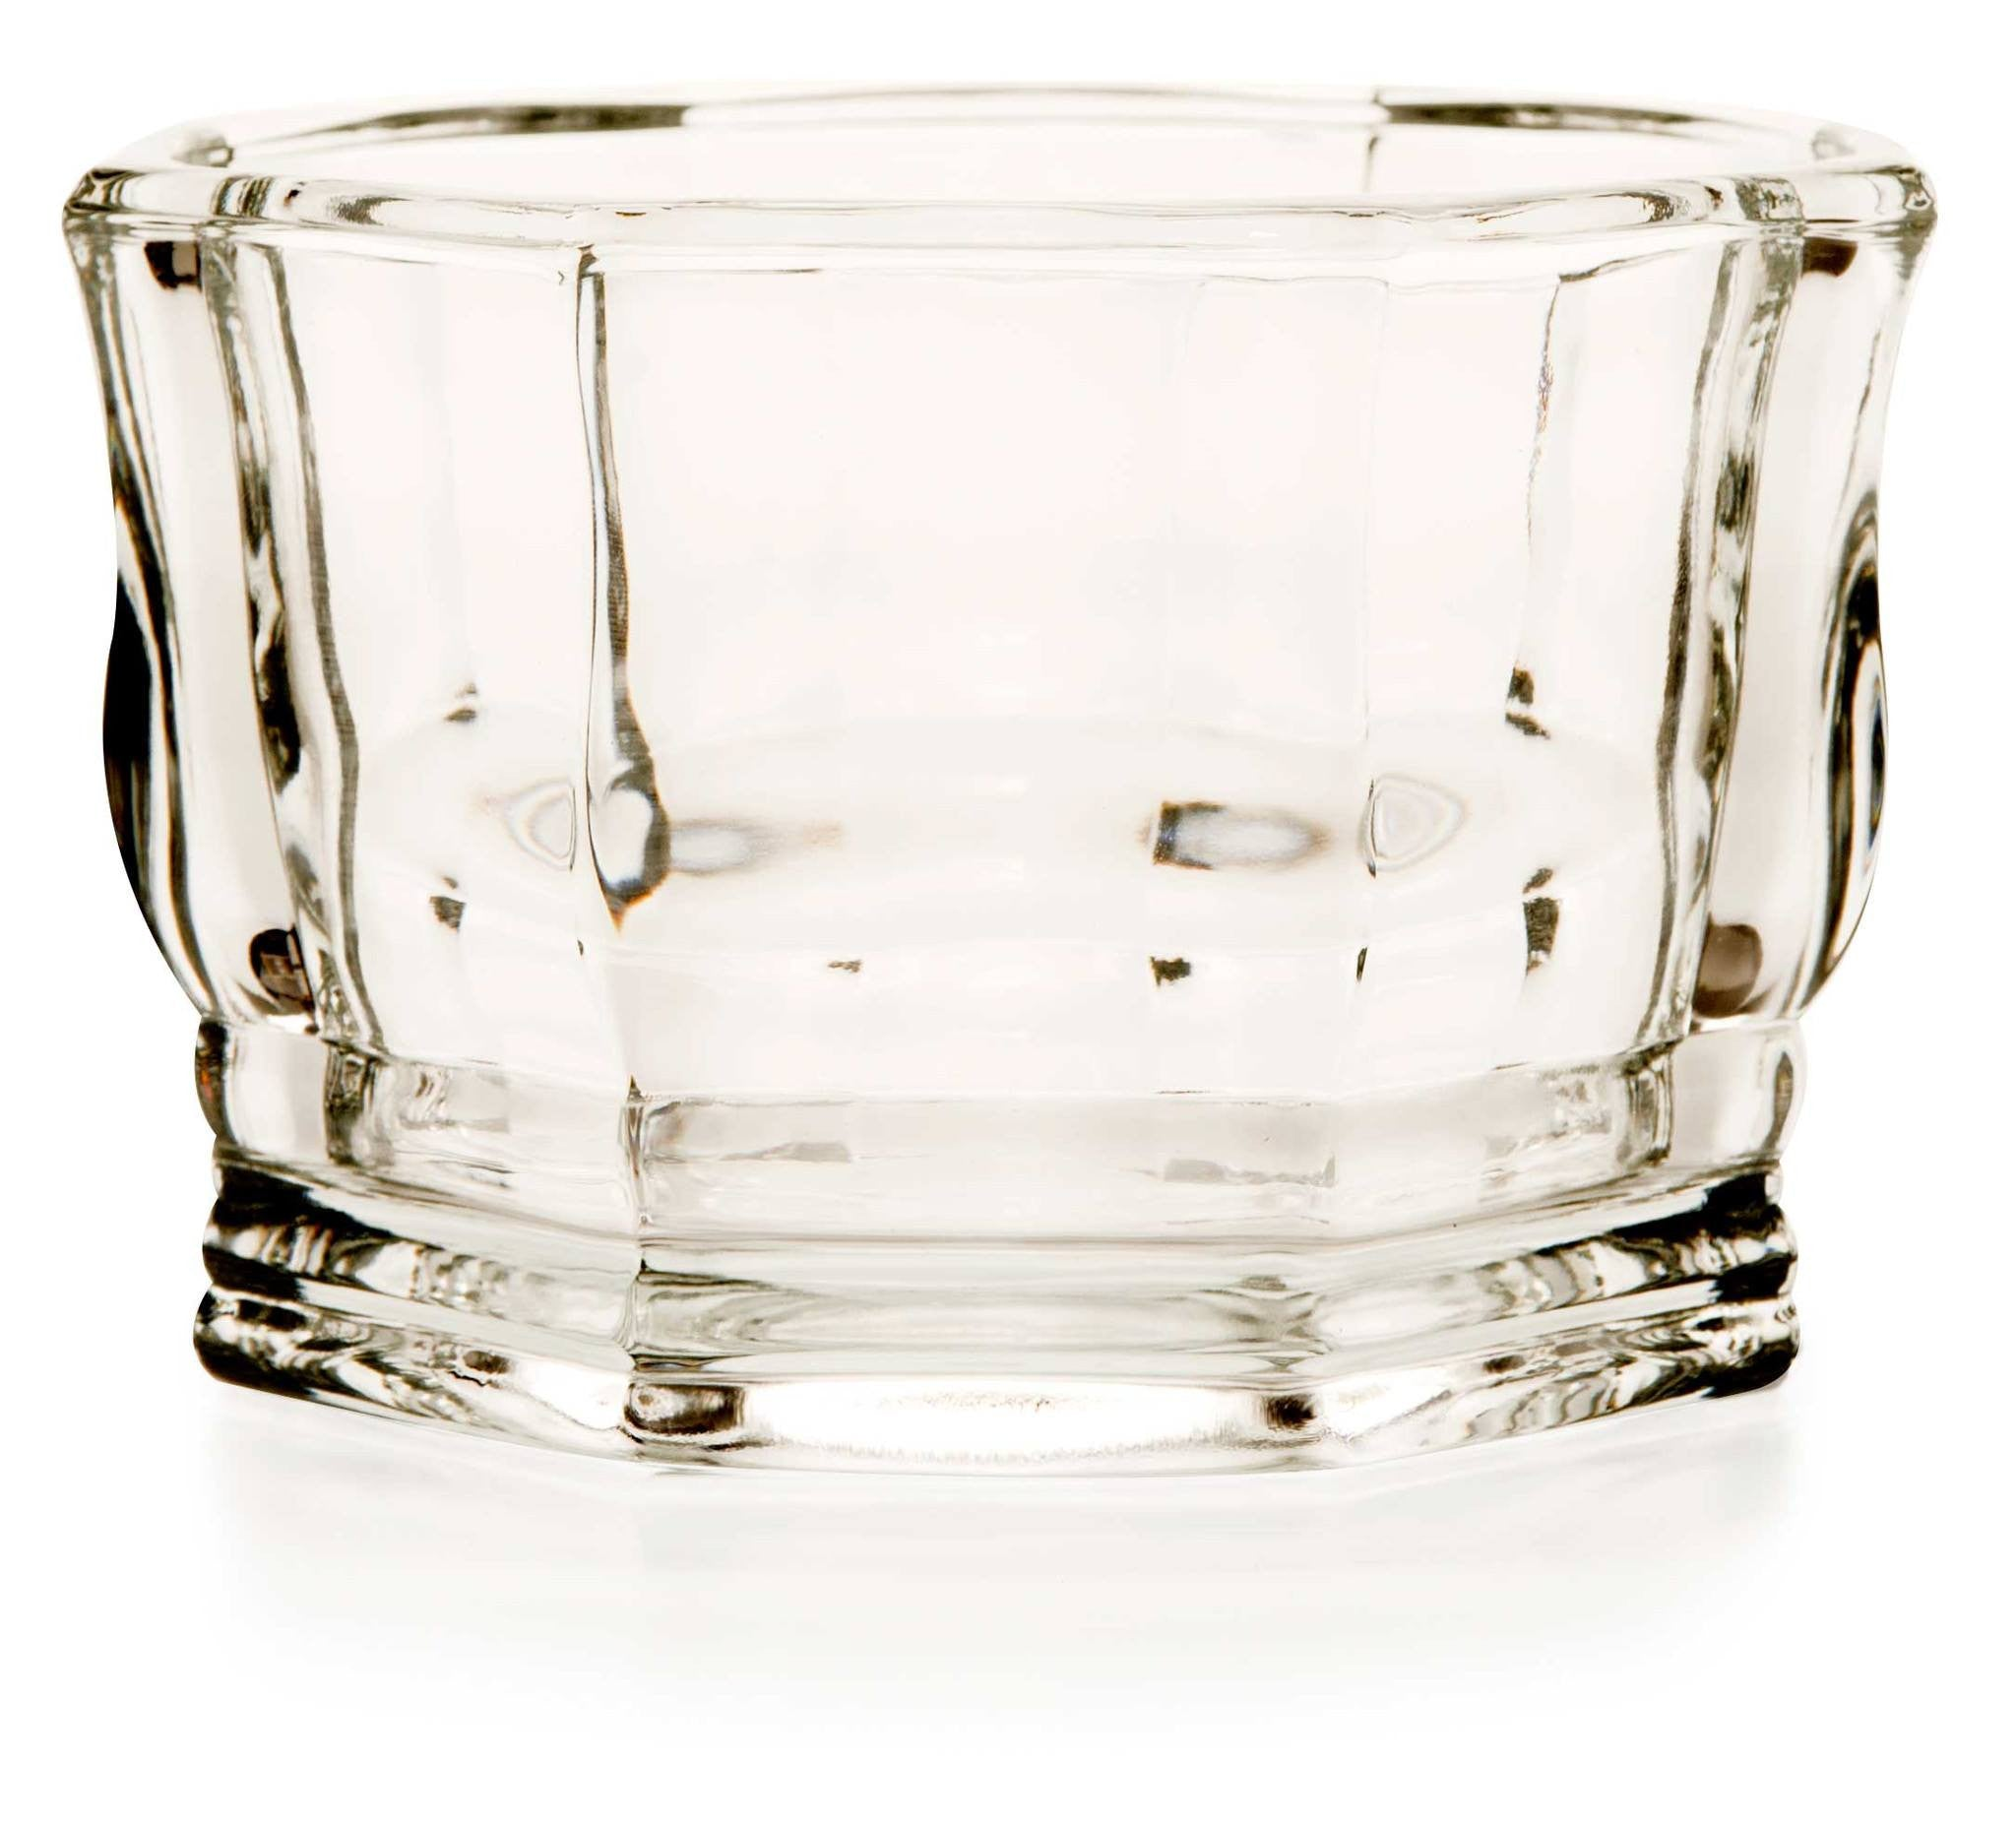 Glass bowl - 8 sided - octagon, faceted -  - Glassware - Wedding Candles